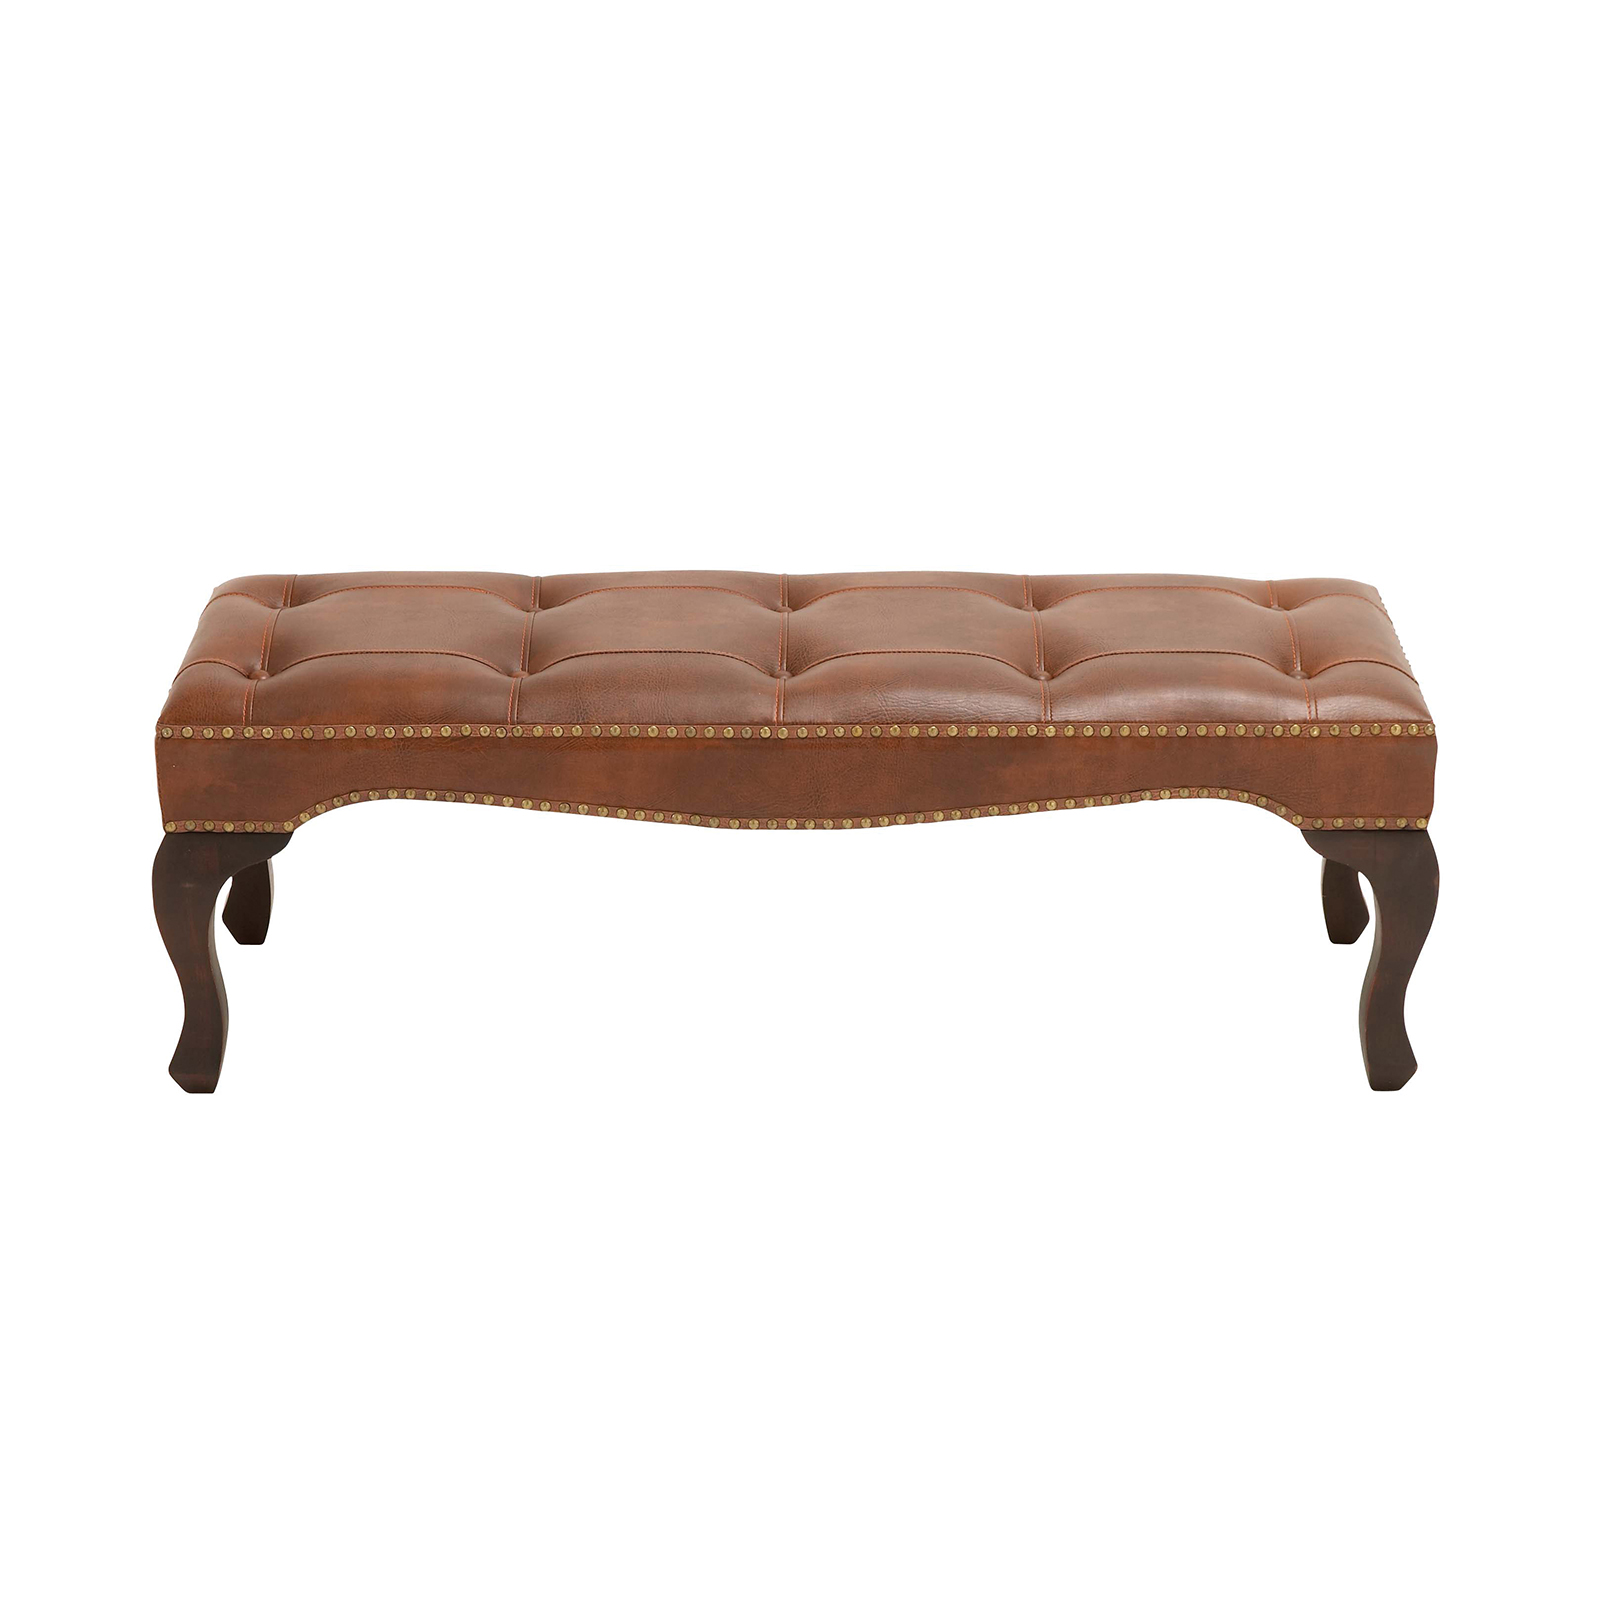 Bedroom benches with storage - Wood Leather Bench With Timeless Design Bedroom Benches At Hayneedle